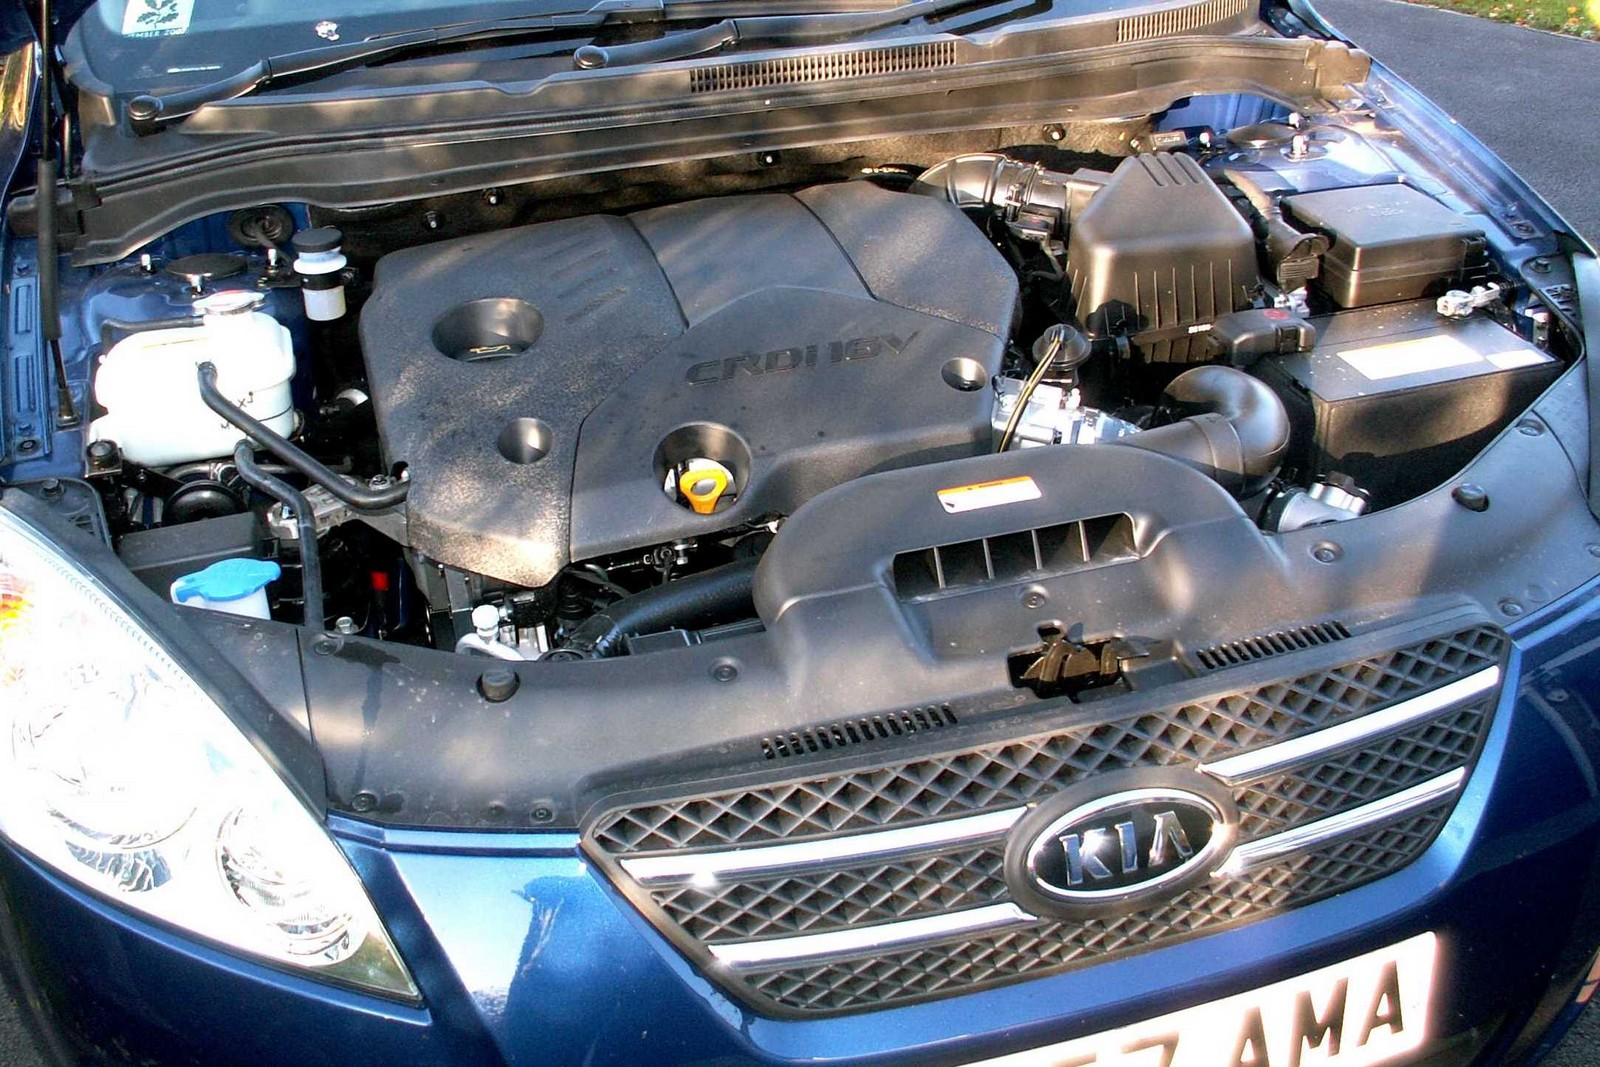 Kia Ceed Engine Car Reviews 2018 Fuse Box Location Anyone Upgraded Their To The Facelift Page 3 Forum